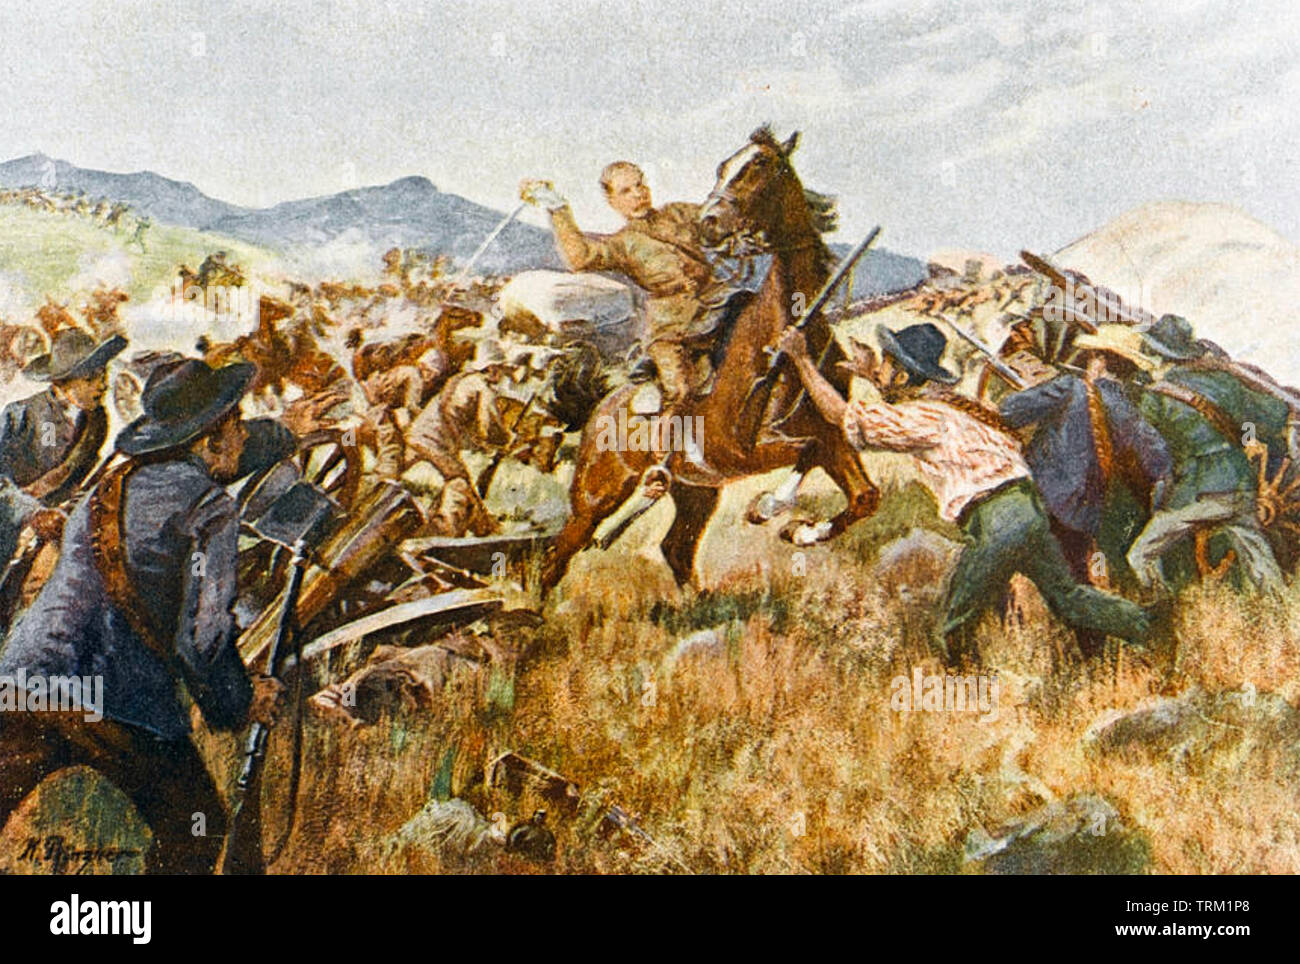 BATTLE OF TWEEBOSCH 7 March 1902. Capture of Lieutenant General Lord Methuen by the Boers - Stock Image